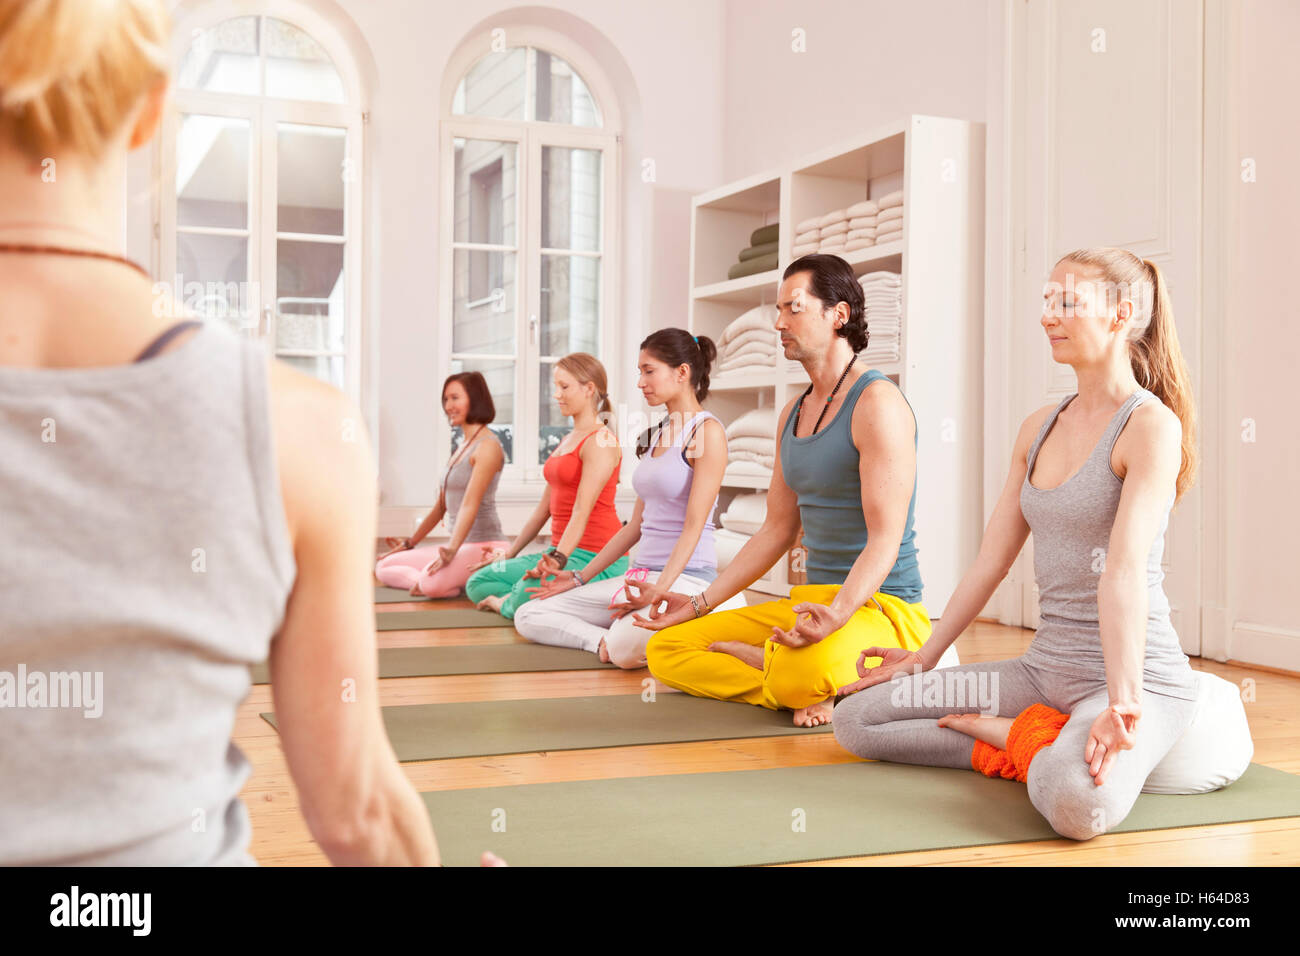 Group of people in yoga studio sitting in Lotus pose next to instructor - Stock Image